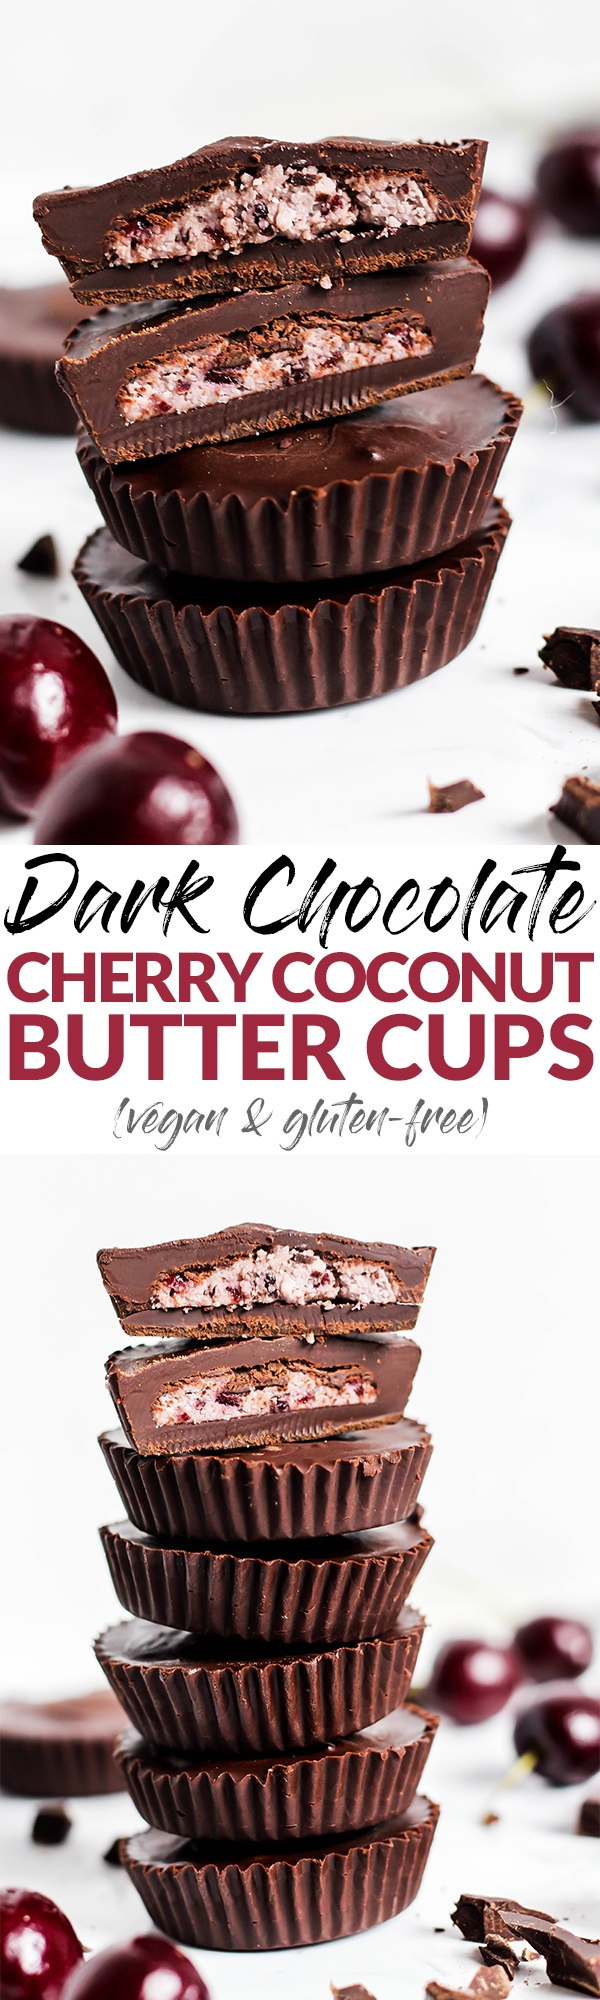 Fruity Dark Chocolate Cherry Coconut Butter Cups make a tasty snack or dessert that's perfectly bite-sized! Only 5 ingredients, vegan & gluten-free.